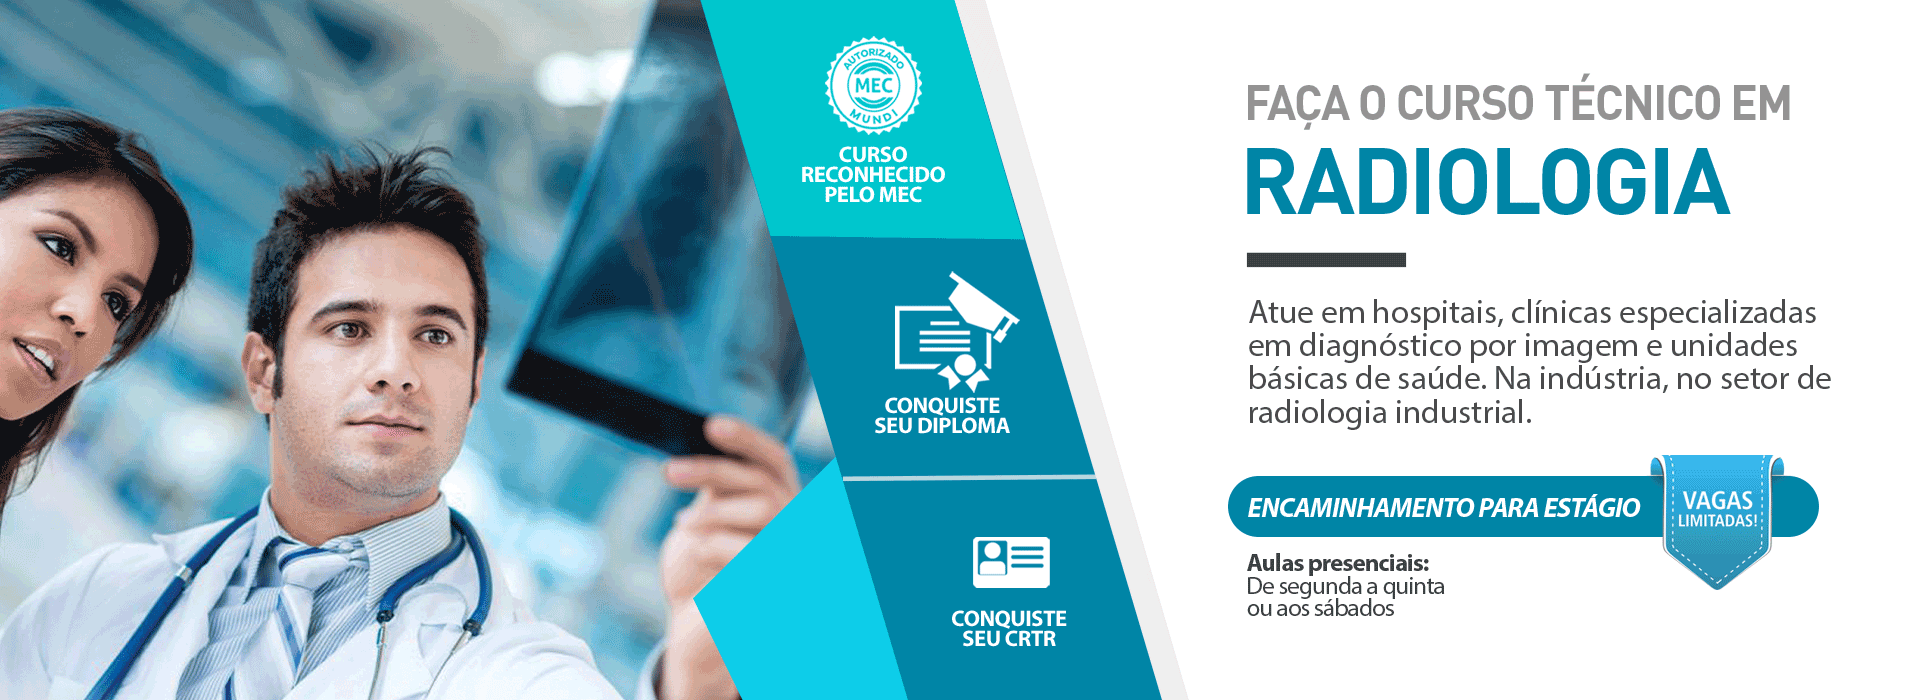 banner_radiologia_técnico